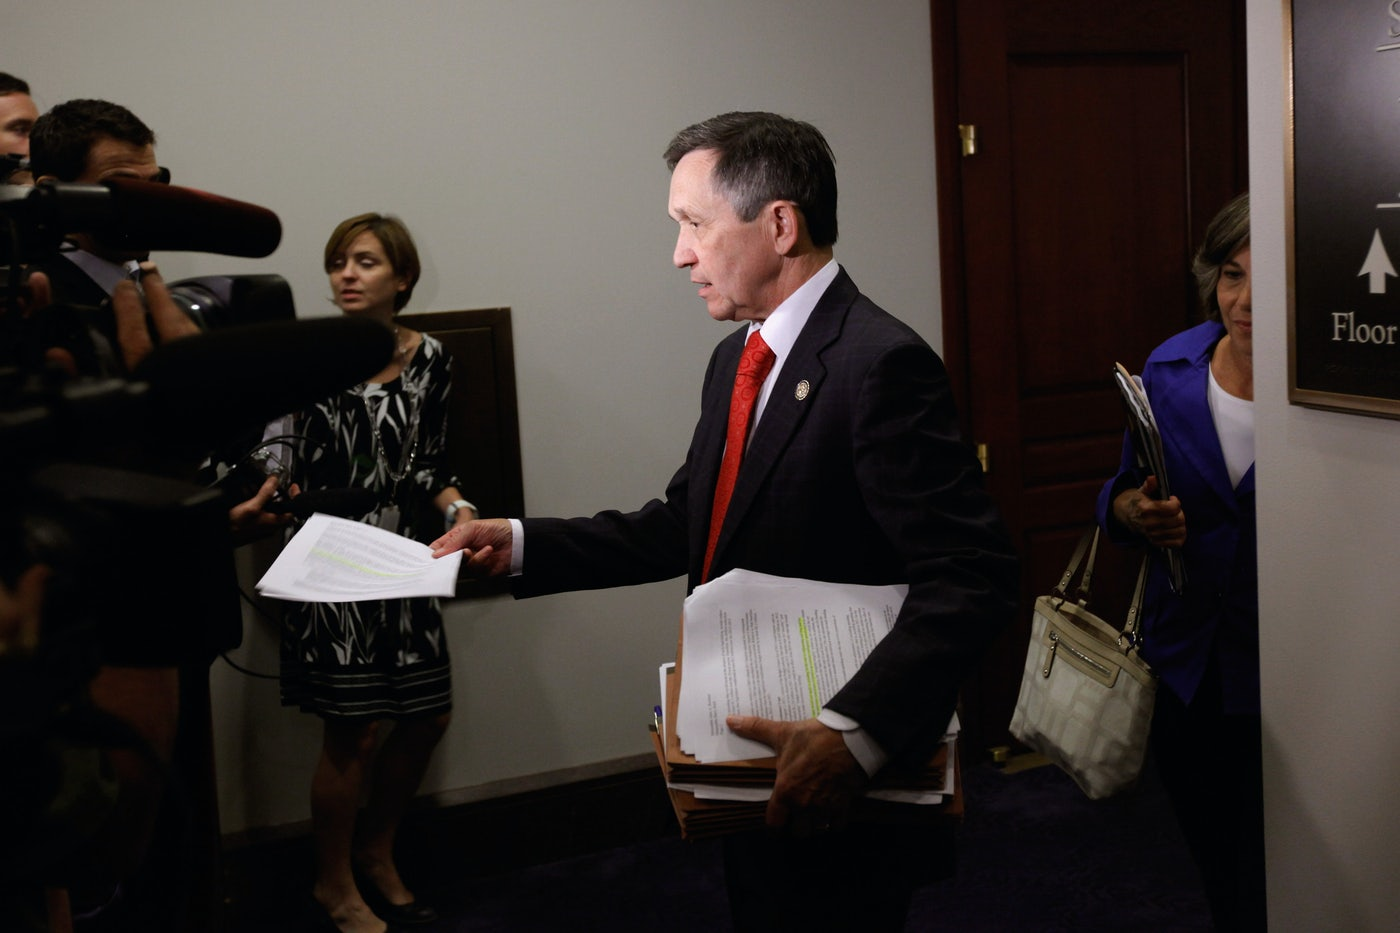 Dennis Kucinich hands out copies of a CBO report to reporters